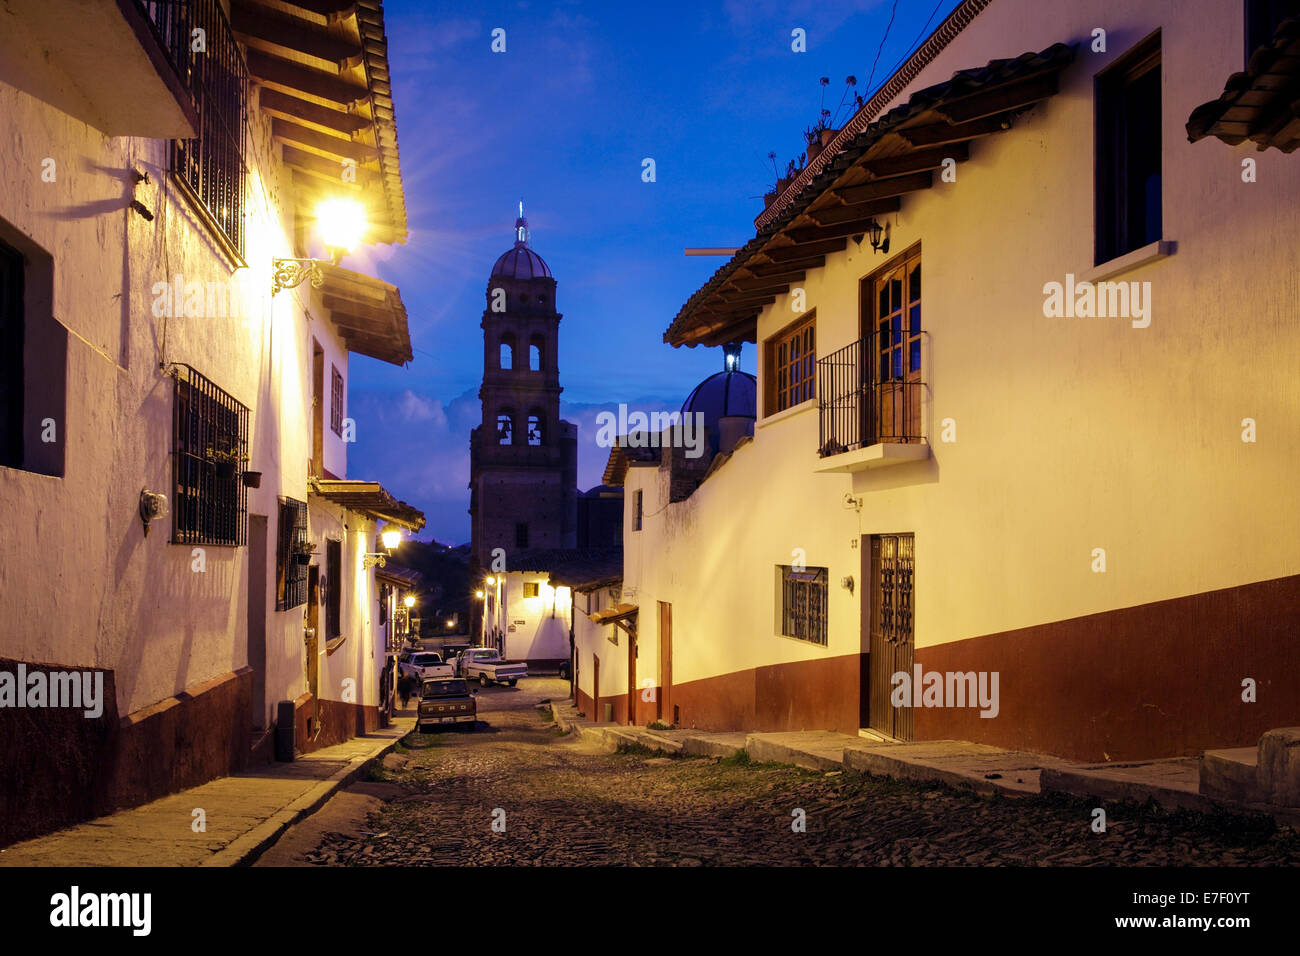 Lamplit cobblestone street of Tapalpa, Jalisco, Mexico at twilight. - Stock Image